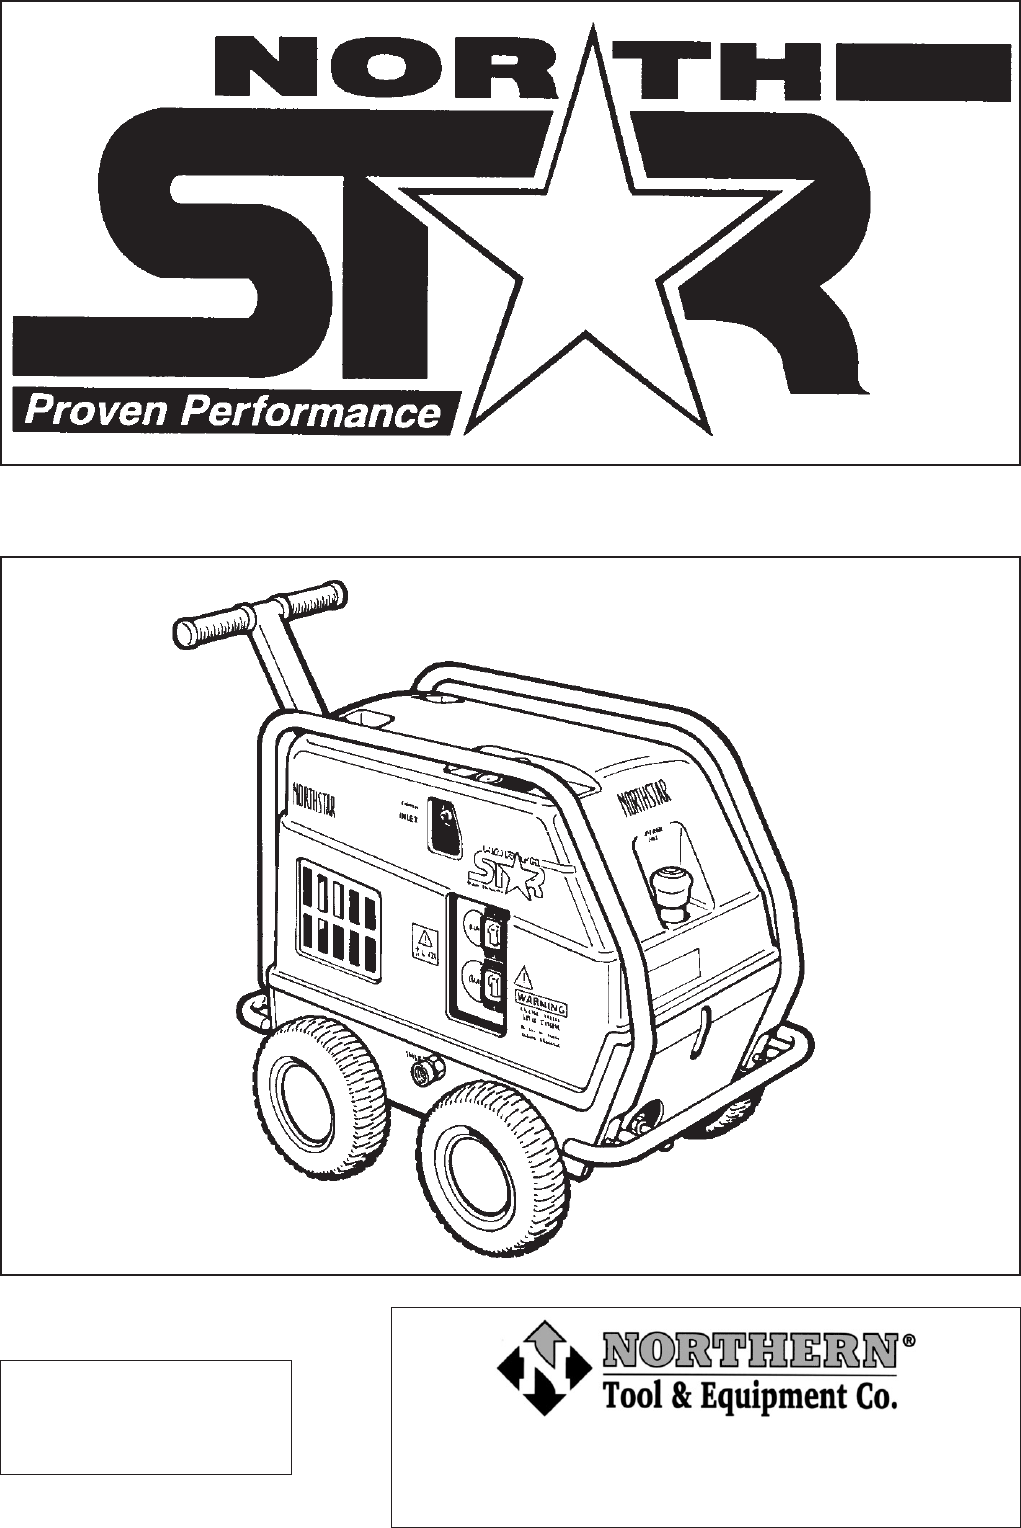 North Star Pressure Washer 157394 User Guide